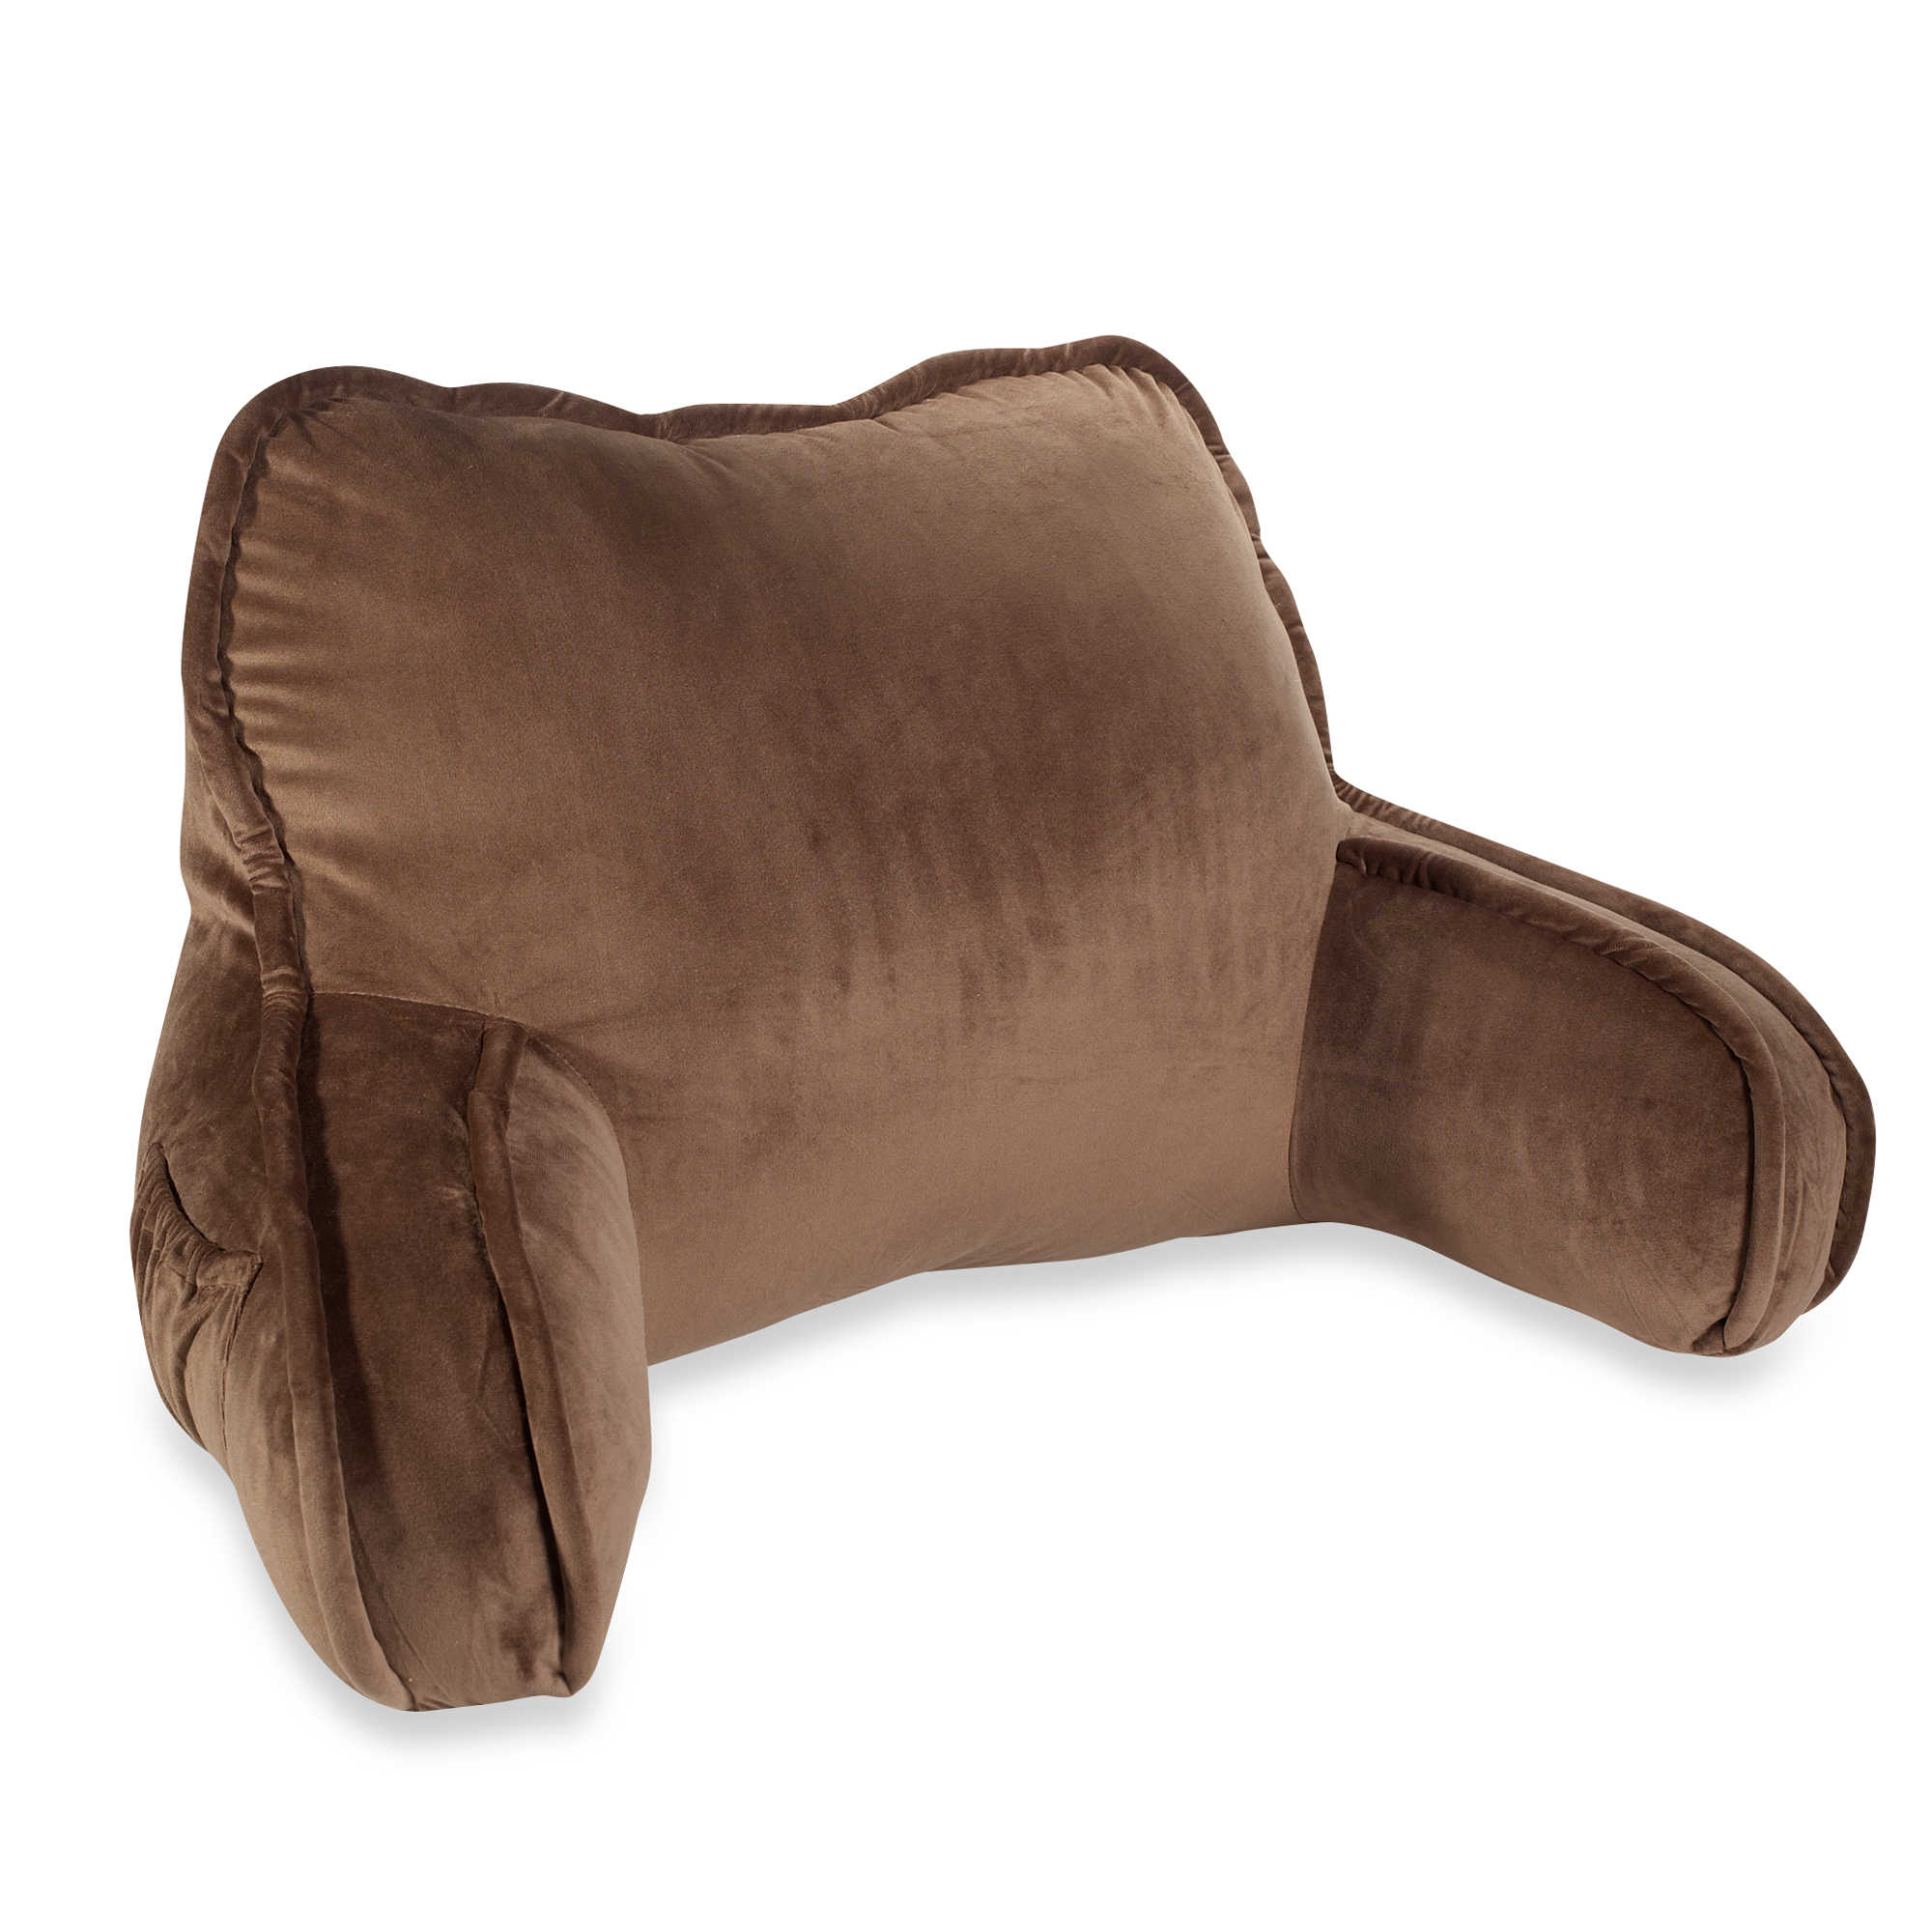 Bedrests | Bed Pillow with Arms | Napping Chair